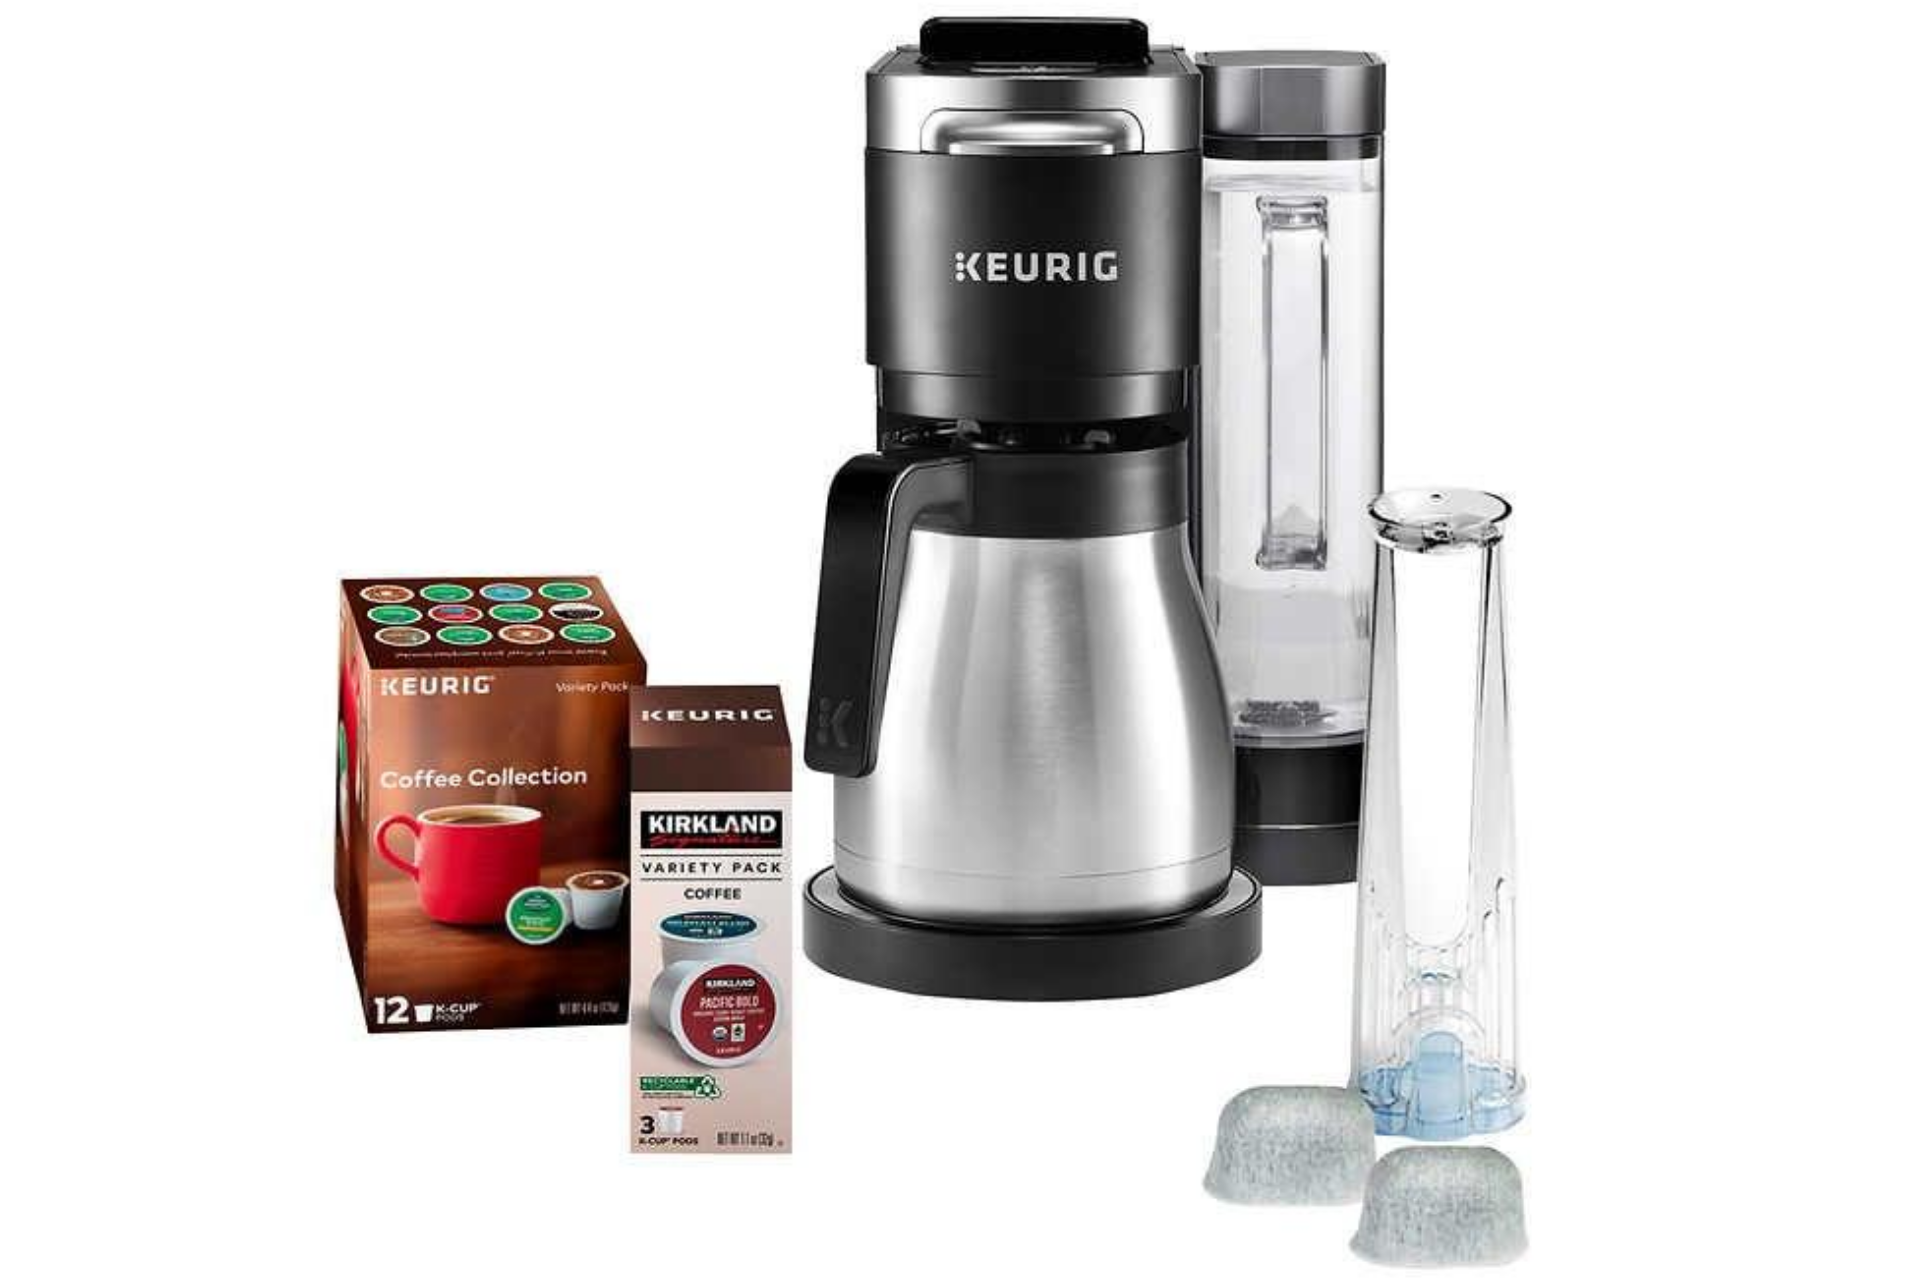 How To Make Iced Coffee With A Keurig In 5 Easy Steps